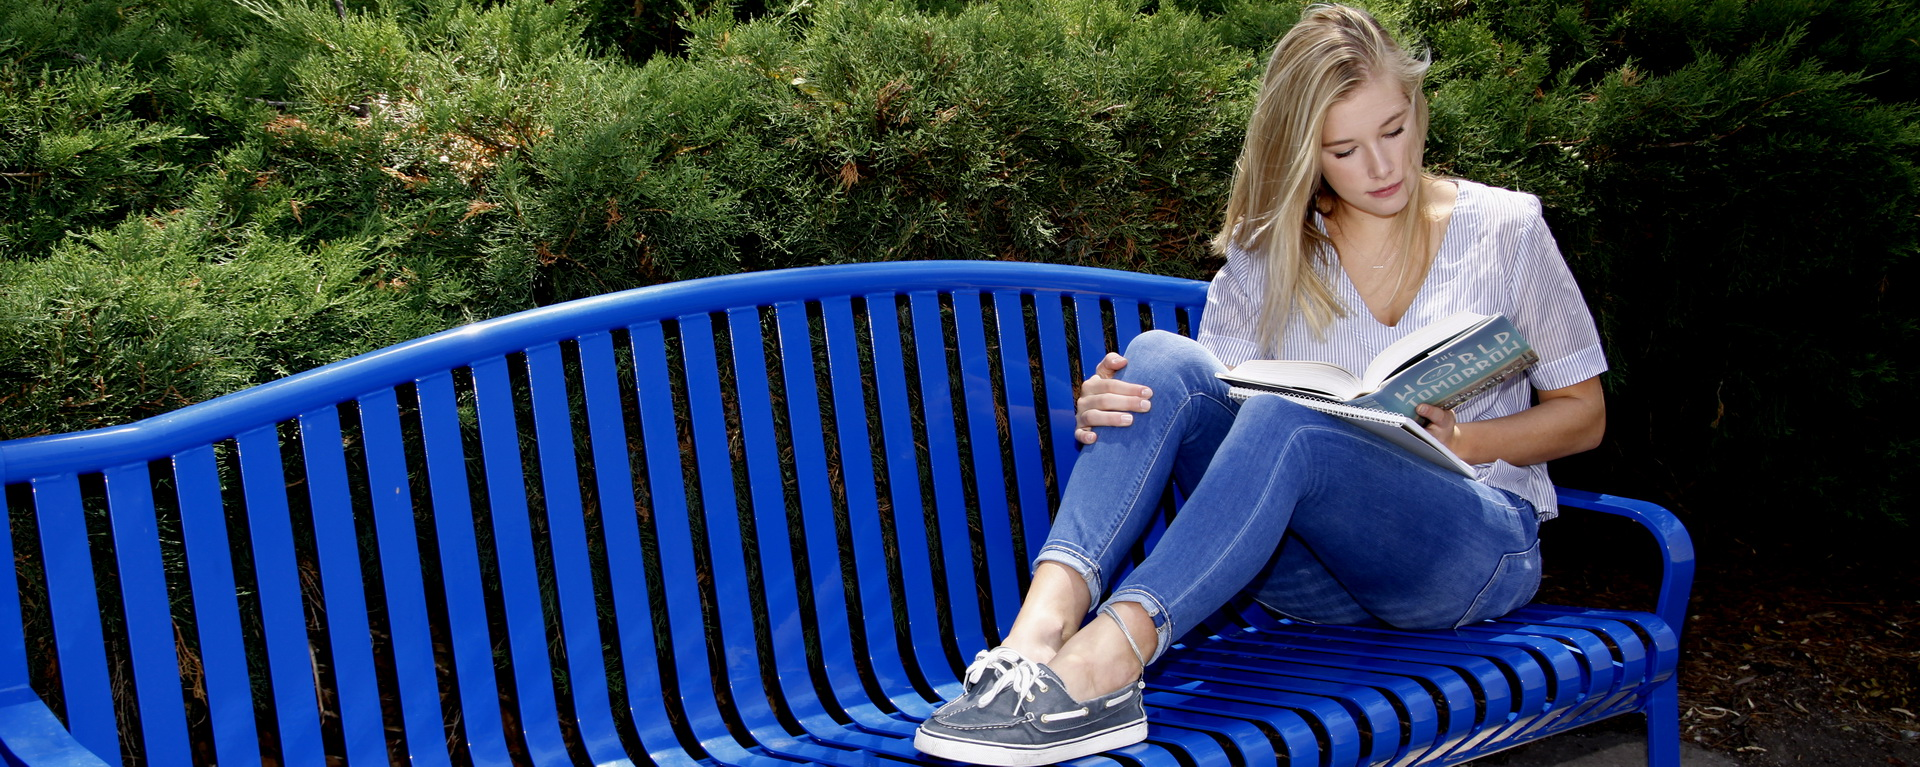 Student reading on a blue bench